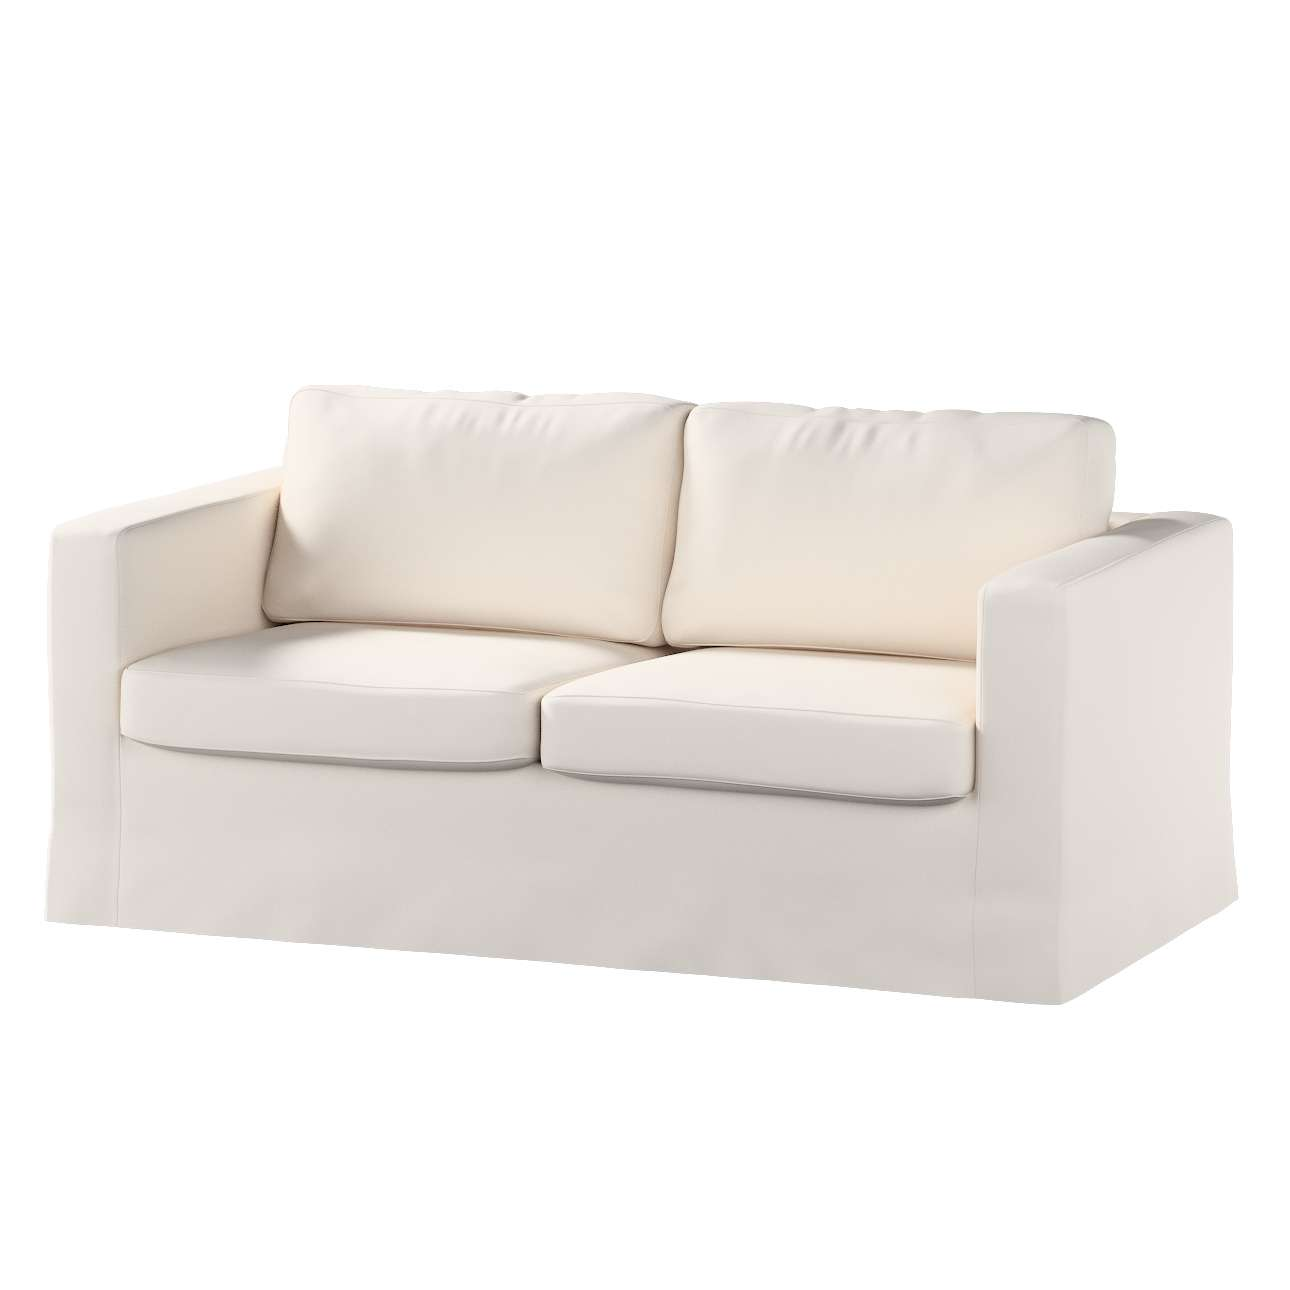 Floor length Karlstad 2-seater sofa cover in collection Etna, fabric: 705-01